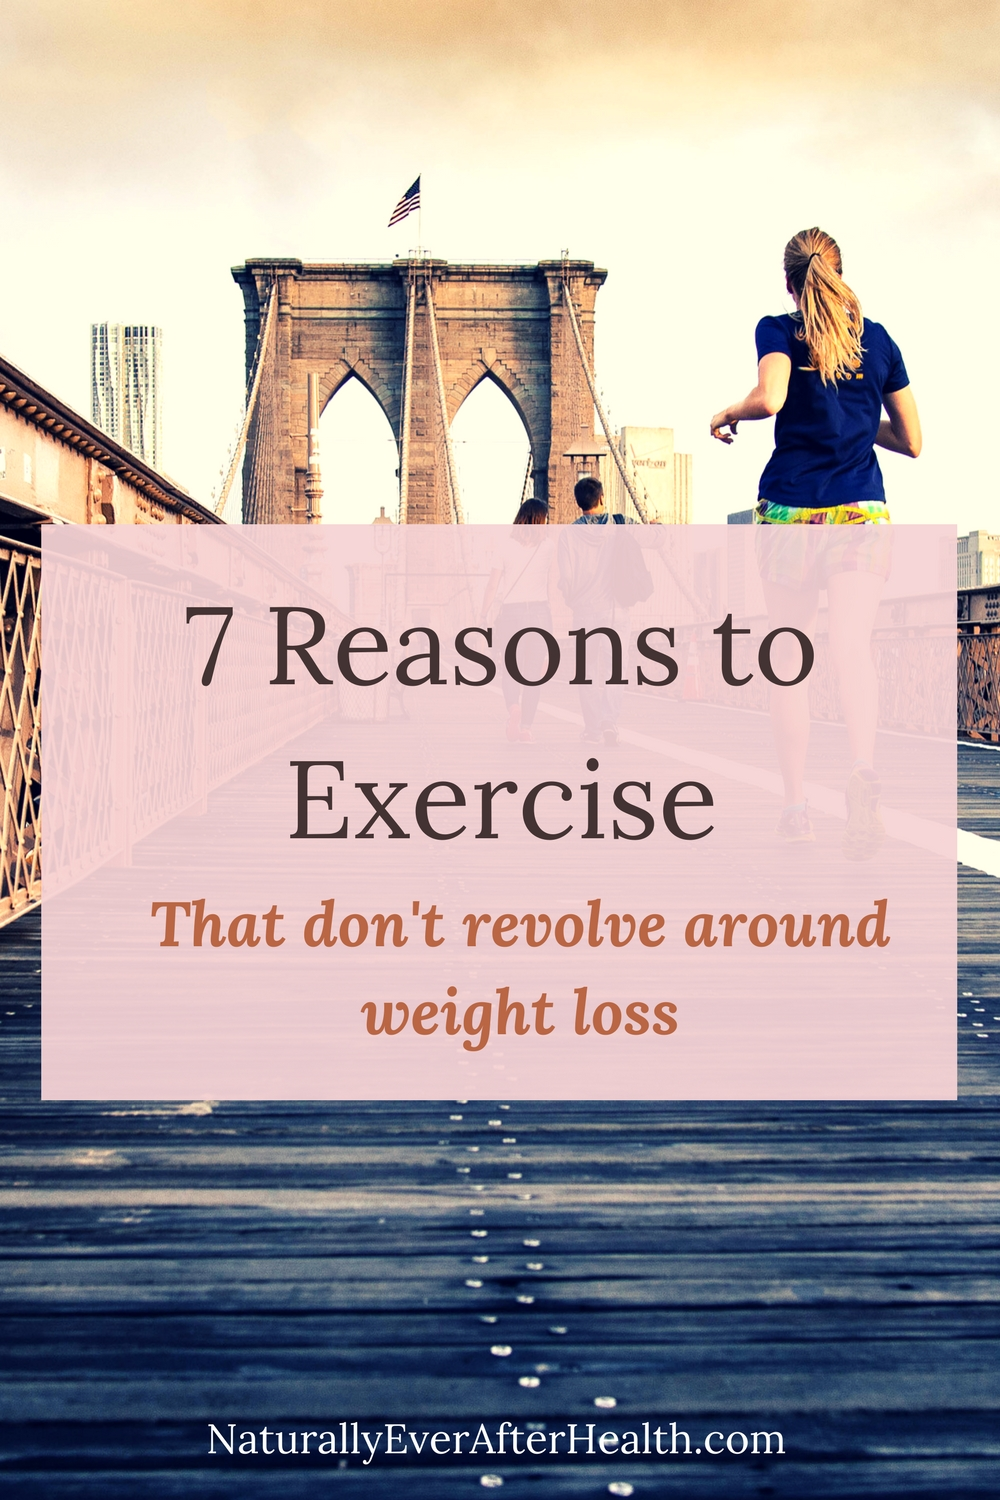 Weight loss, skinny jeans - physique isn't the only benefit of working out. There are plenty of reasons to exercise! Happiness, stress relief, confidence and more!